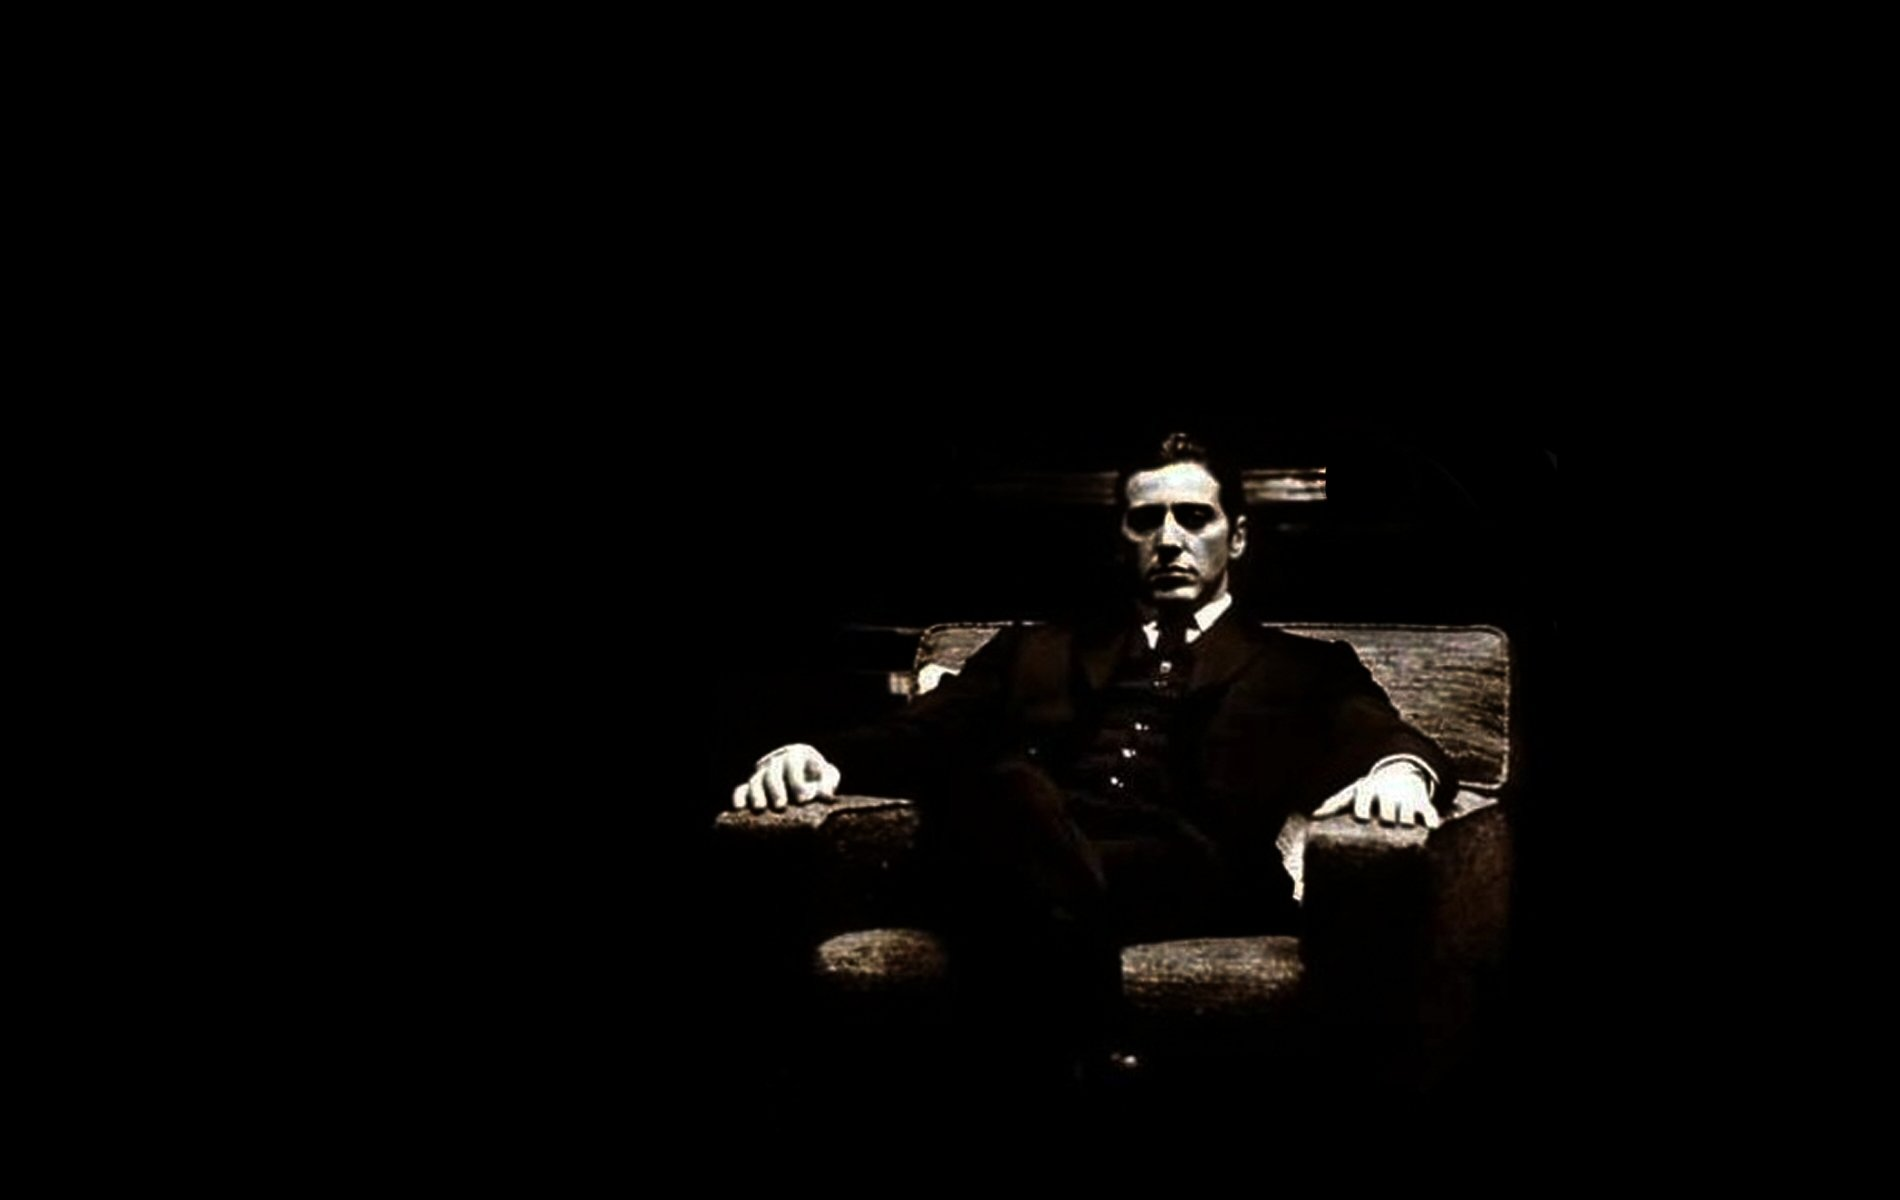 The Godfather Wallpaper Iphone X The Godfather Fondo De Pantalla And Fondo De Escritorio